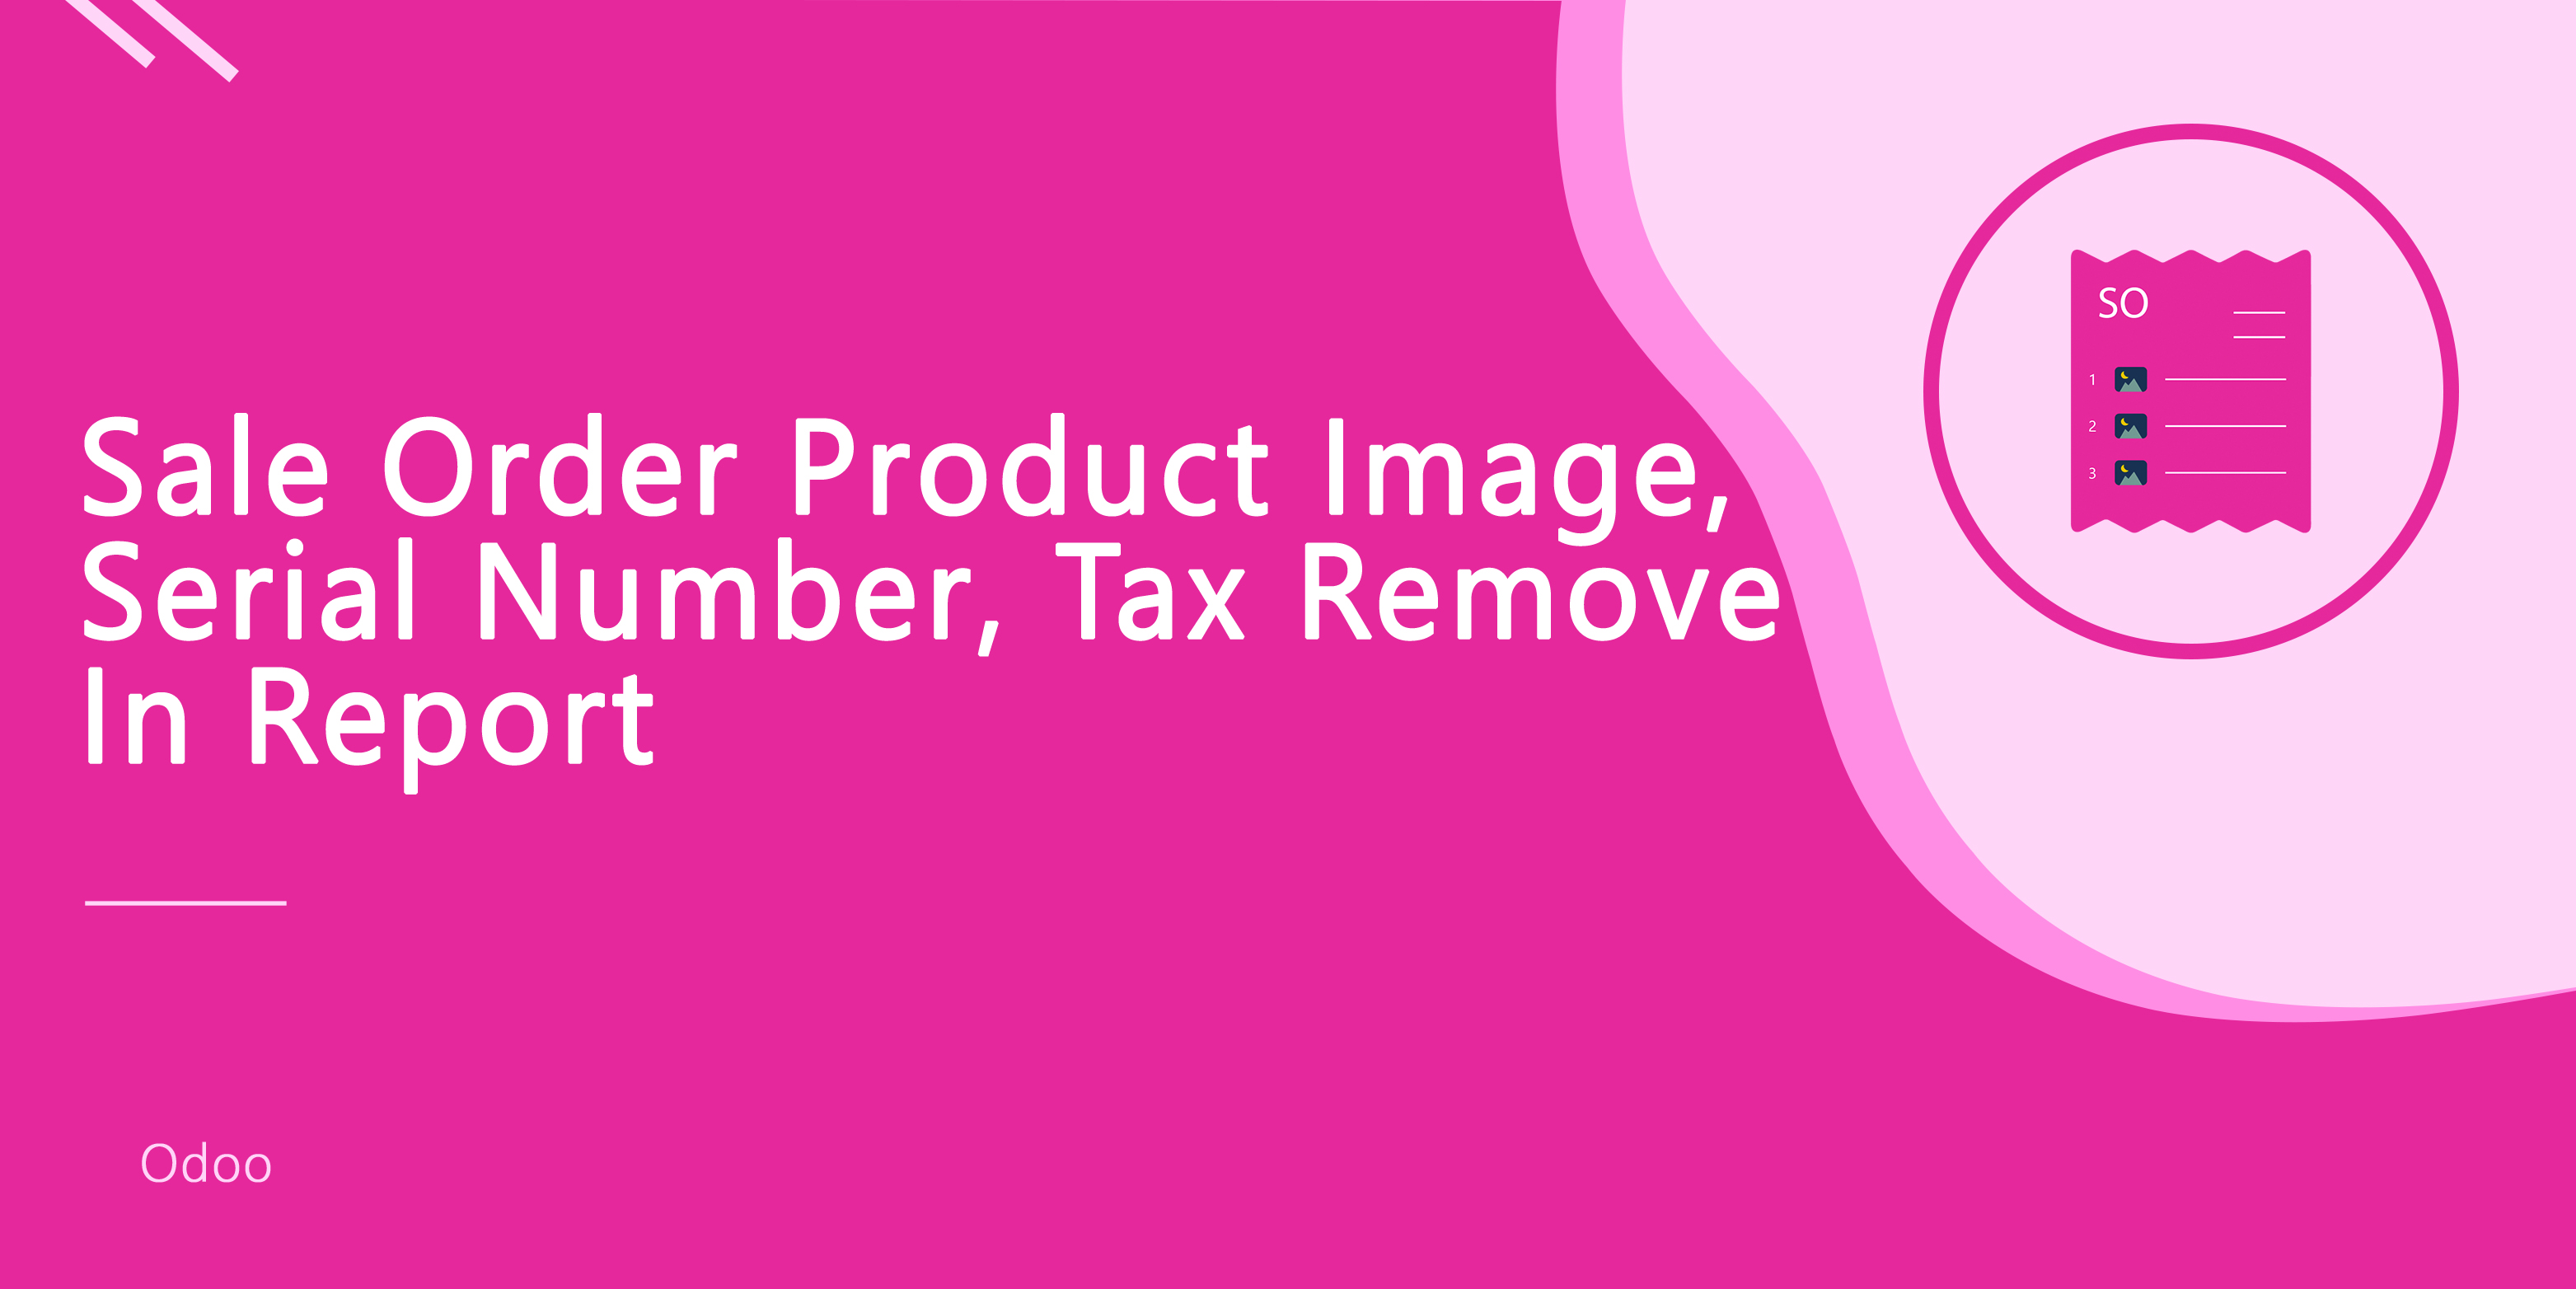 Sale Order Product Image, Serial Number, Tax Remove In Report